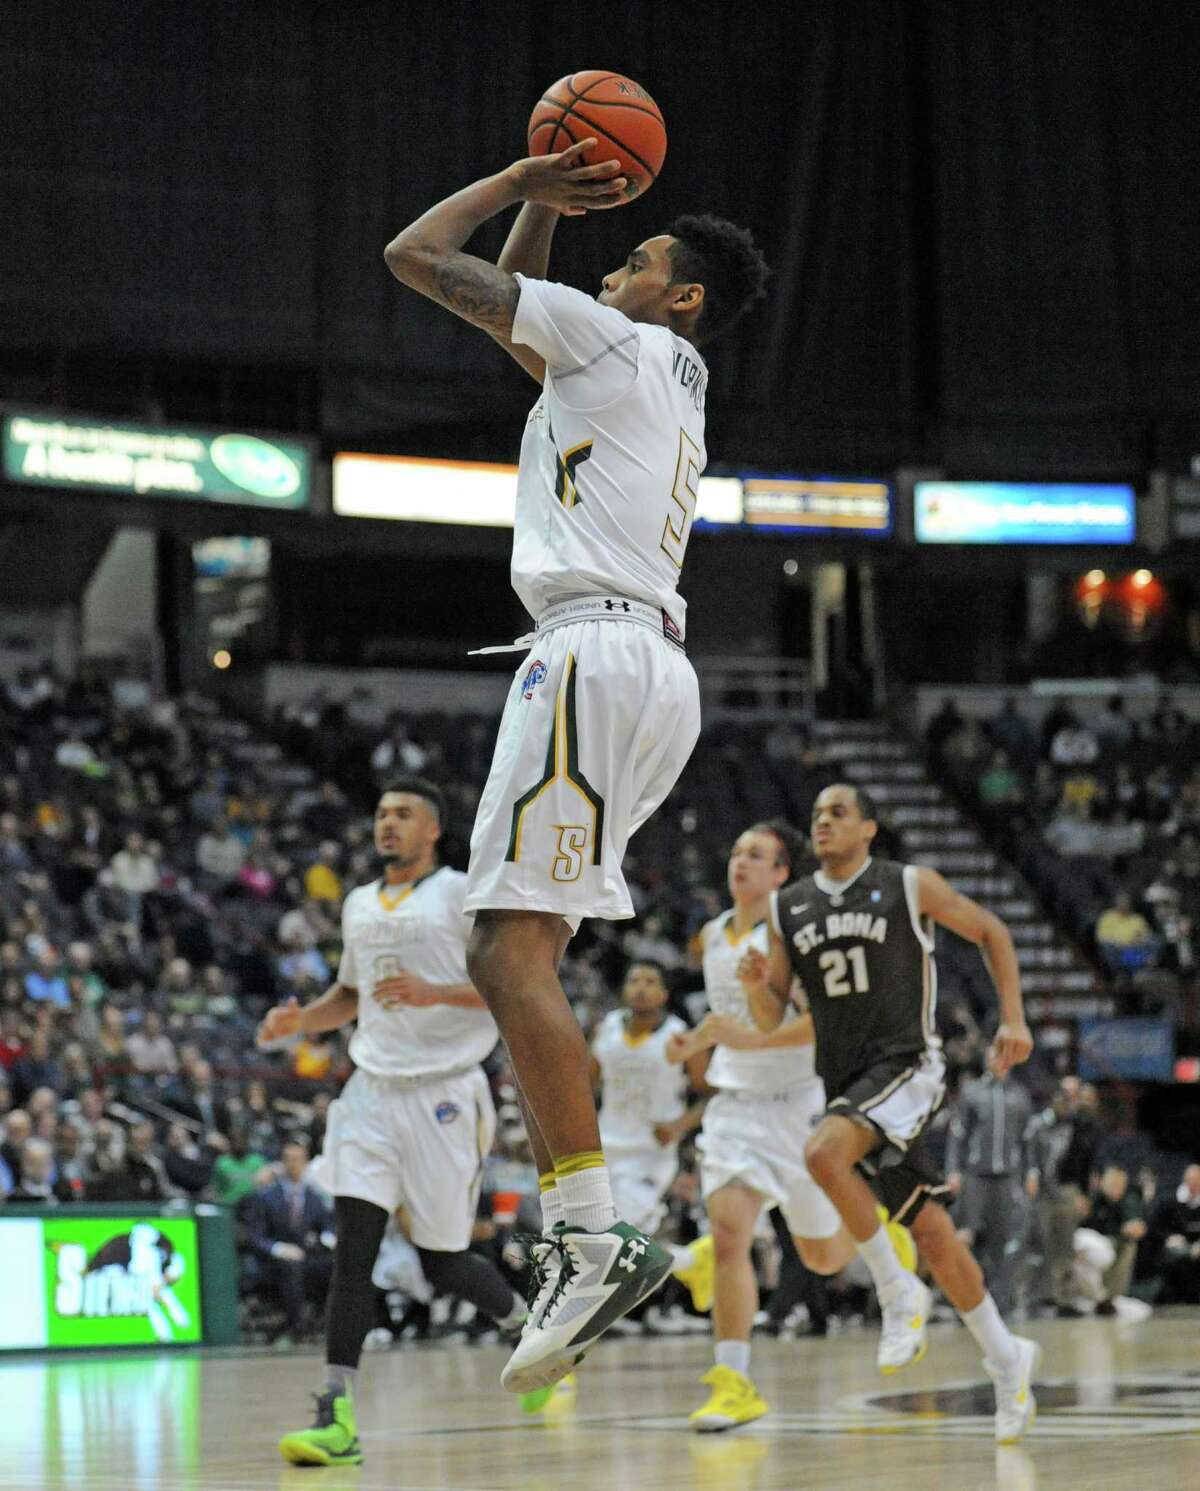 Siena's Kenny Wormley puts up a three pointer for a score during their men's college basketball game against St. Bonaventure at the Times Union Center on Tuesday Dec. 22, 2015 in Albany, N.Y. (Michael P. Farrell/Times Union)